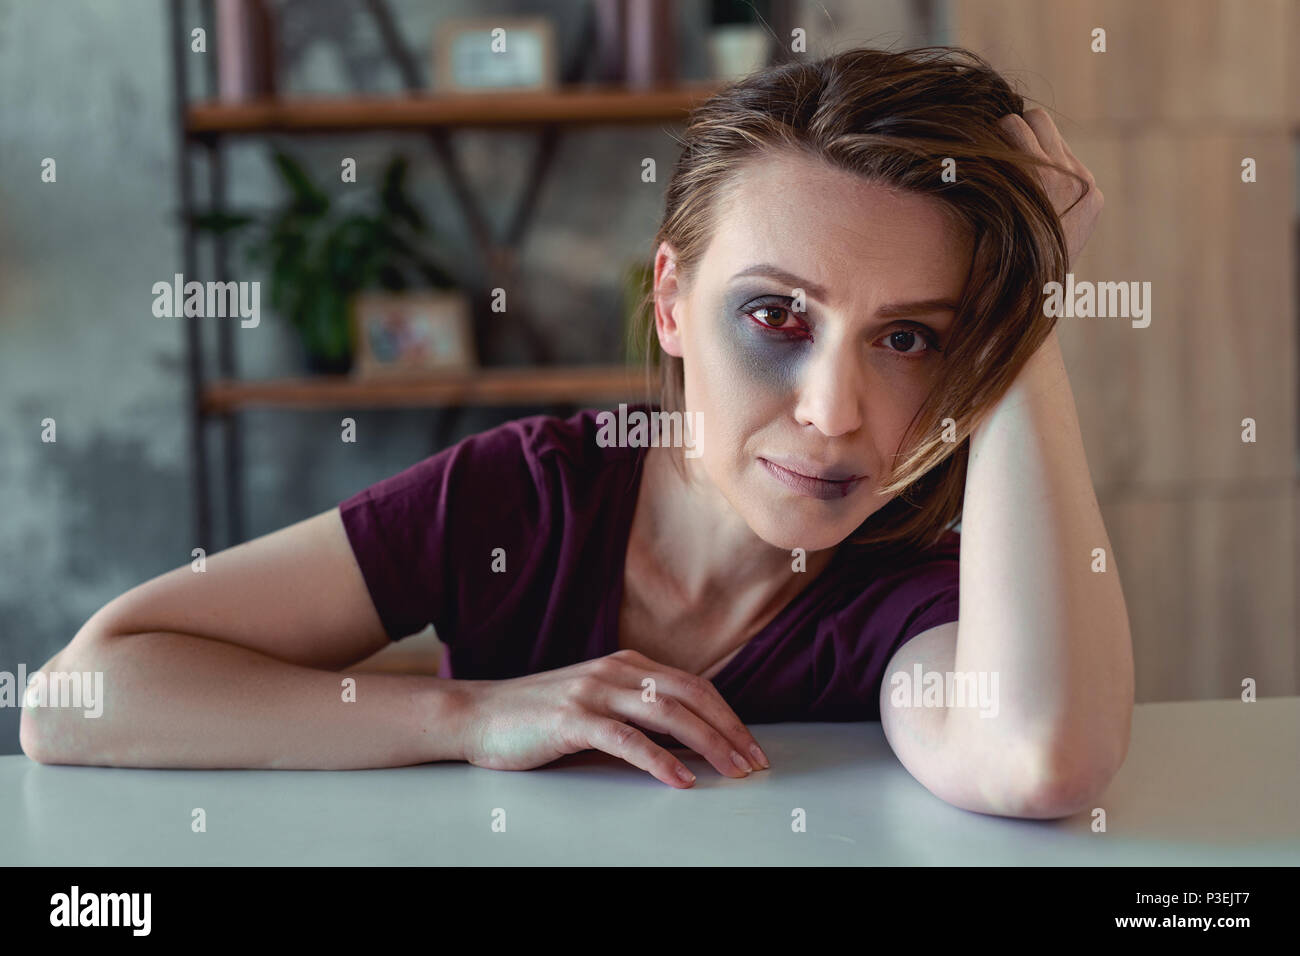 Crying wife having split lip after family dispute - Stock Image